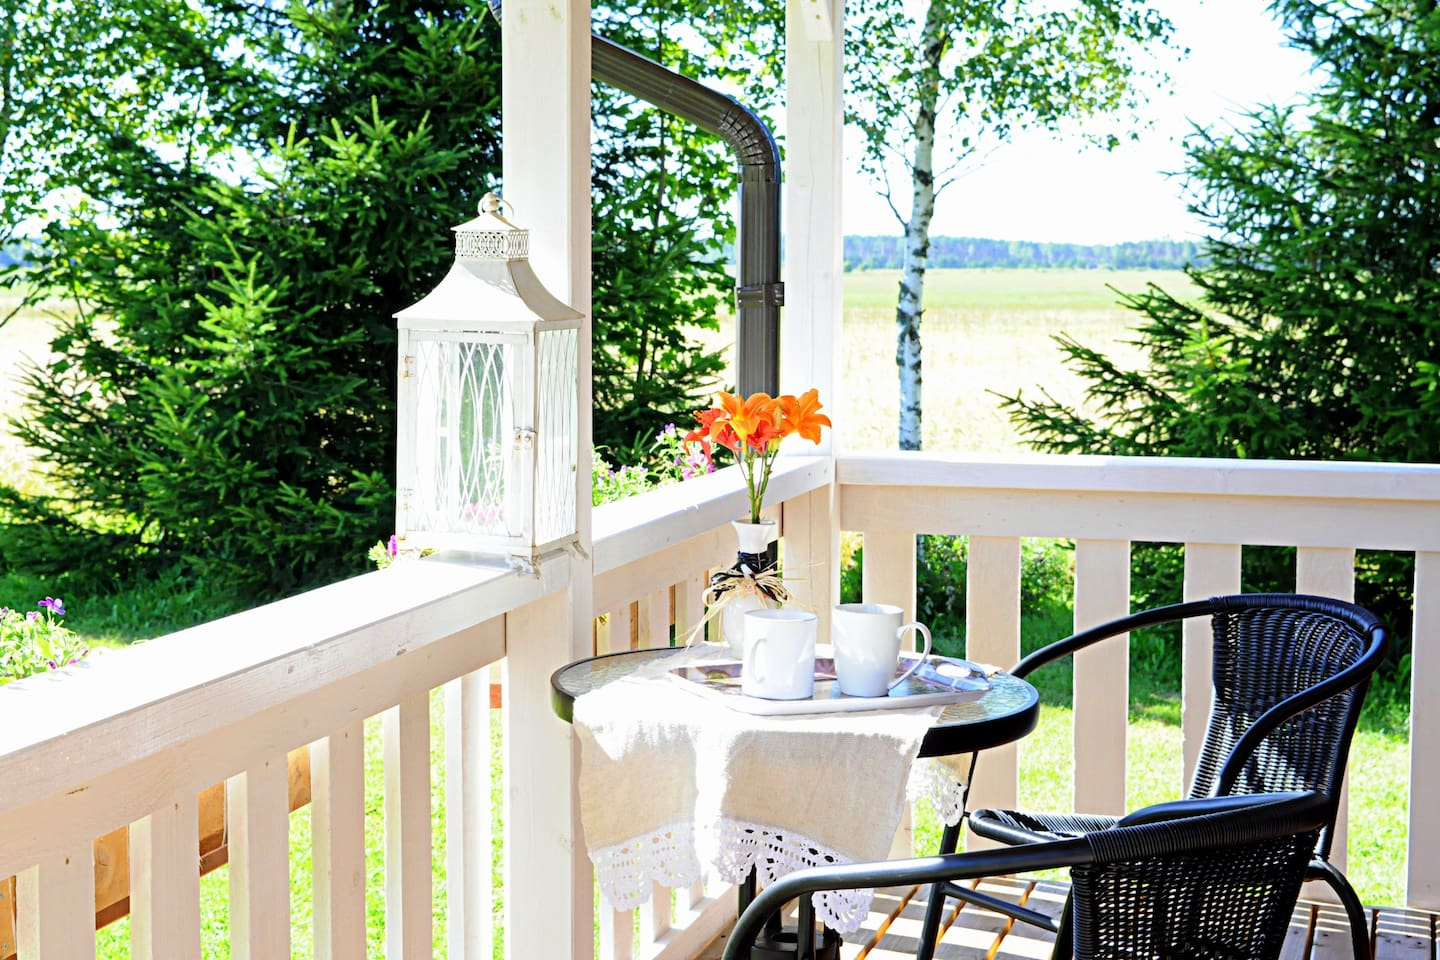 Morning coffee on your private terrace